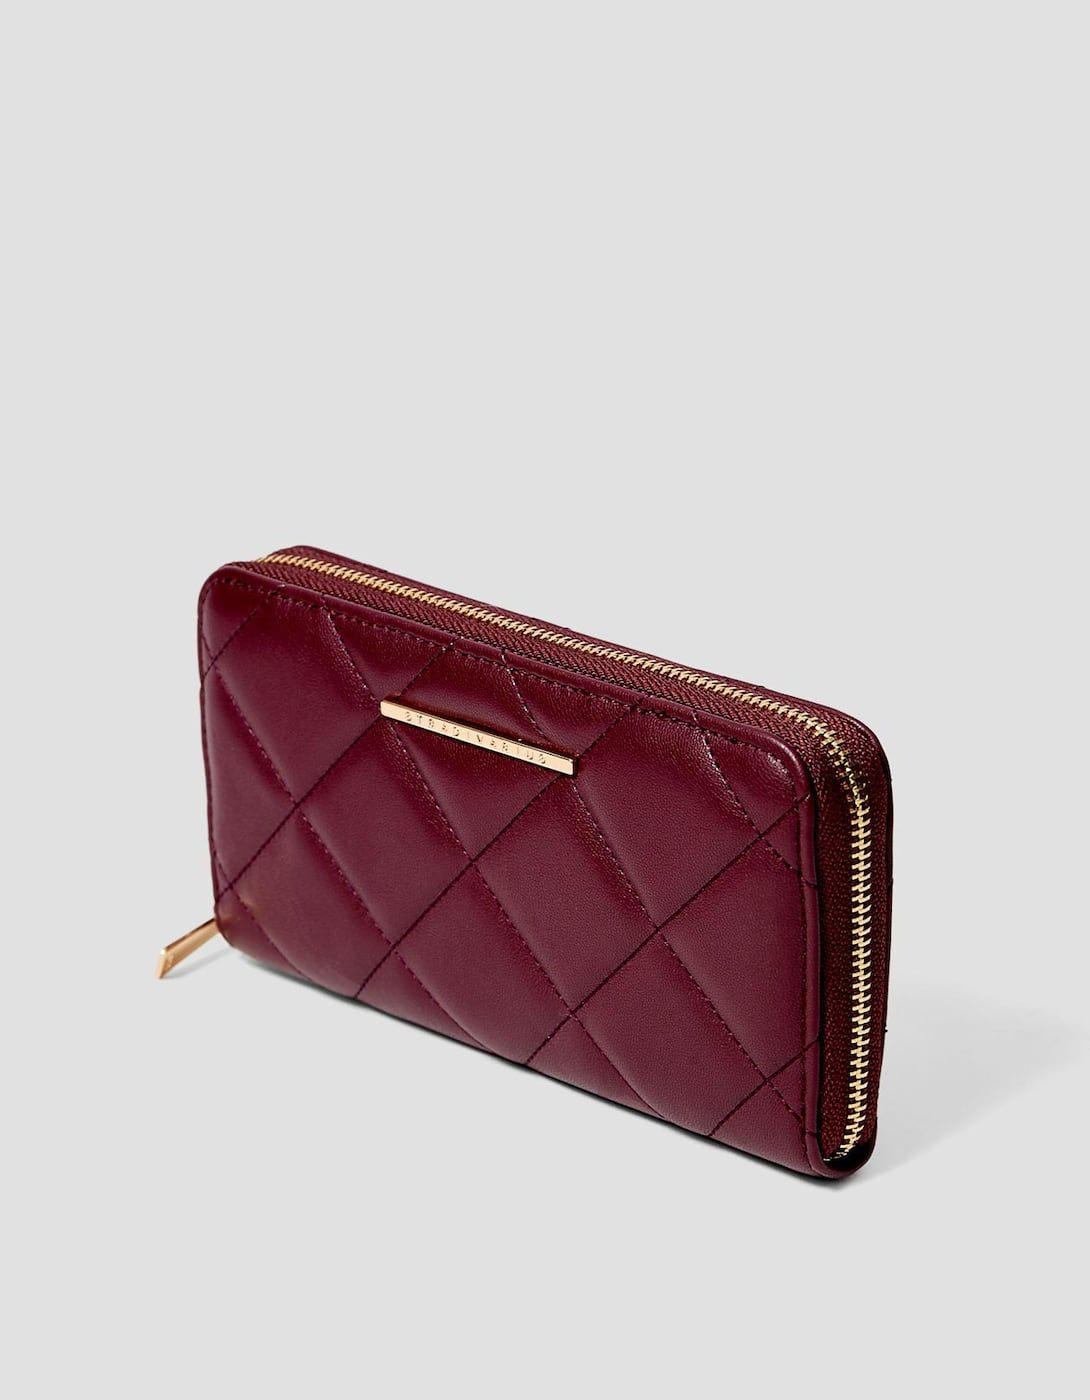 d3326732f REF. 3998/001-I2018 | View detailsQuilted zip purse | Odeca 2018 ...